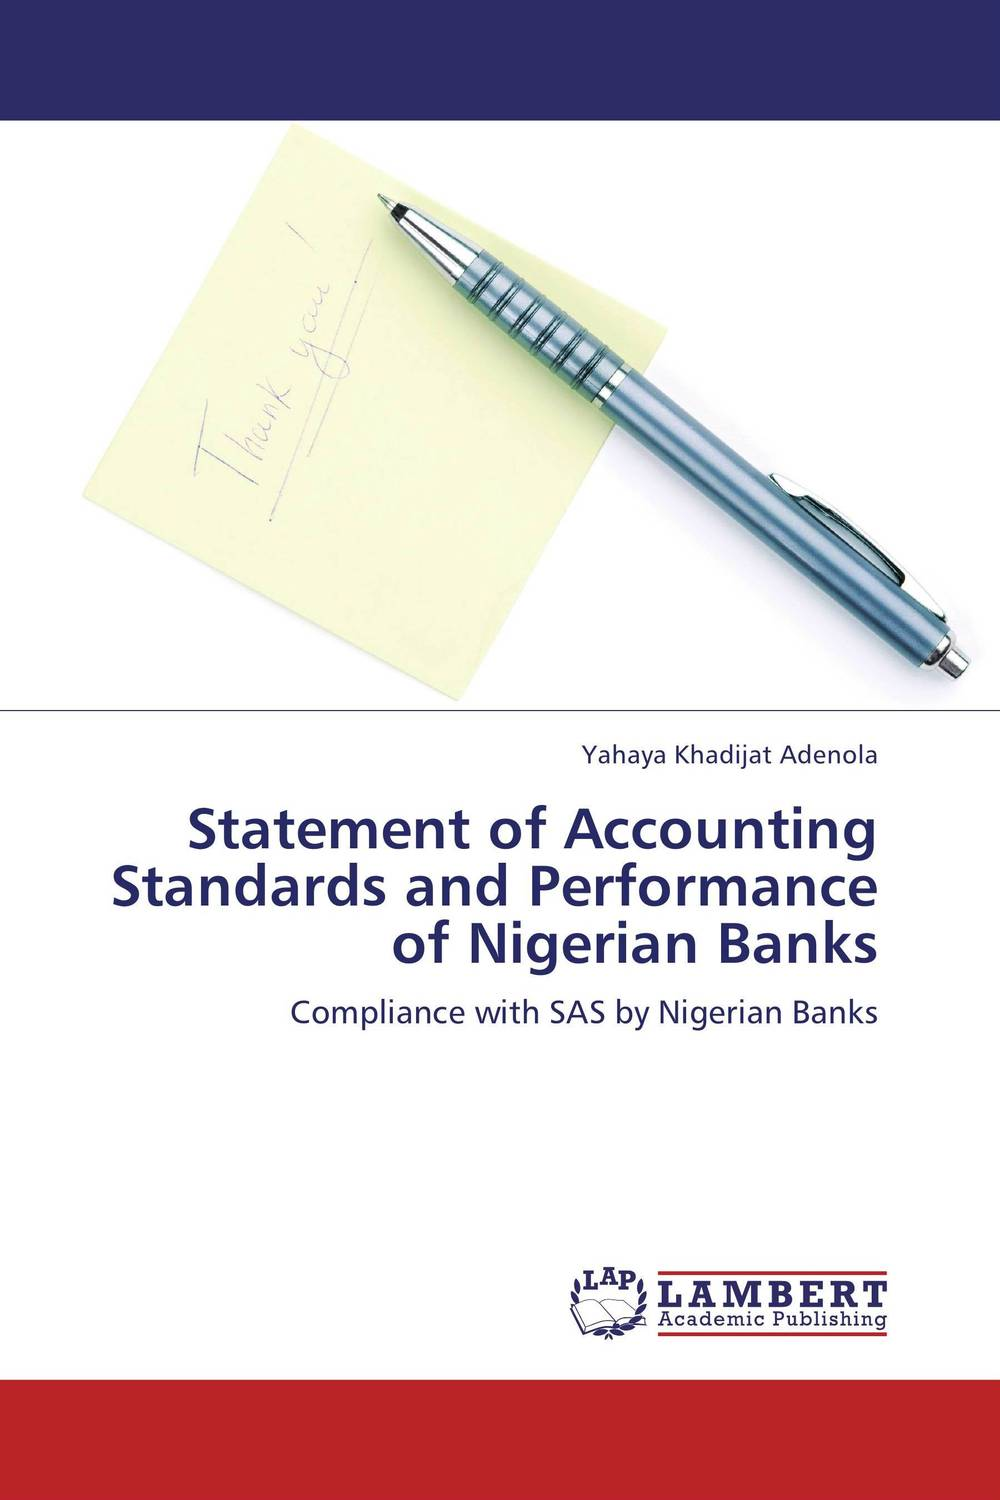 Statement of Accounting Standards and Performance of Nigerian Banks